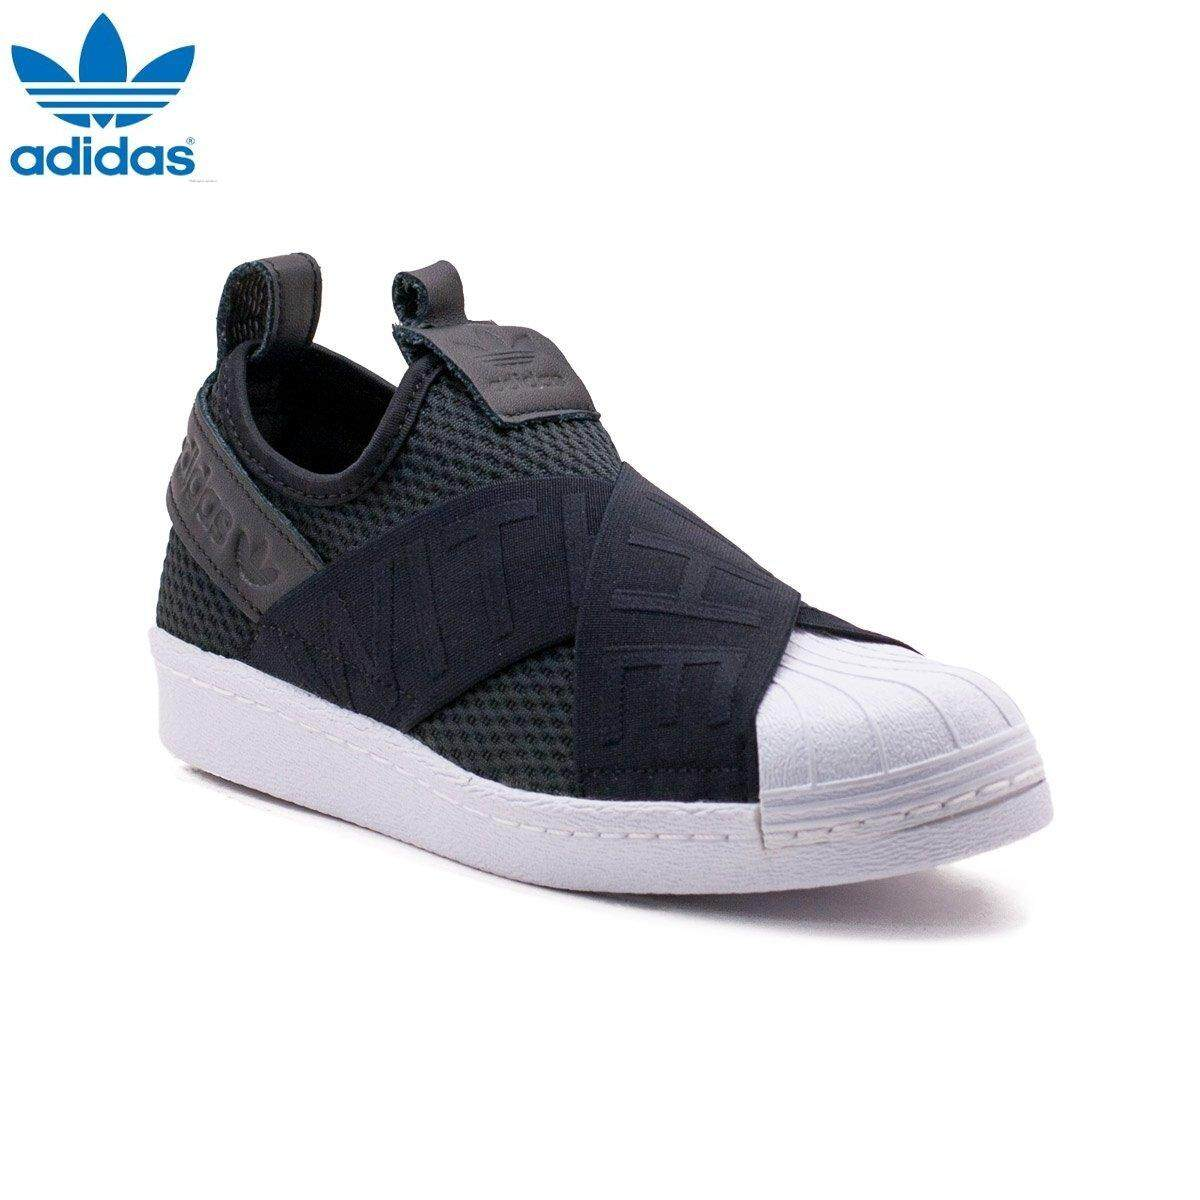 Adidas Women s Shoes price in Malaysia - Best Adidas Women s Shoes ... df60a1155